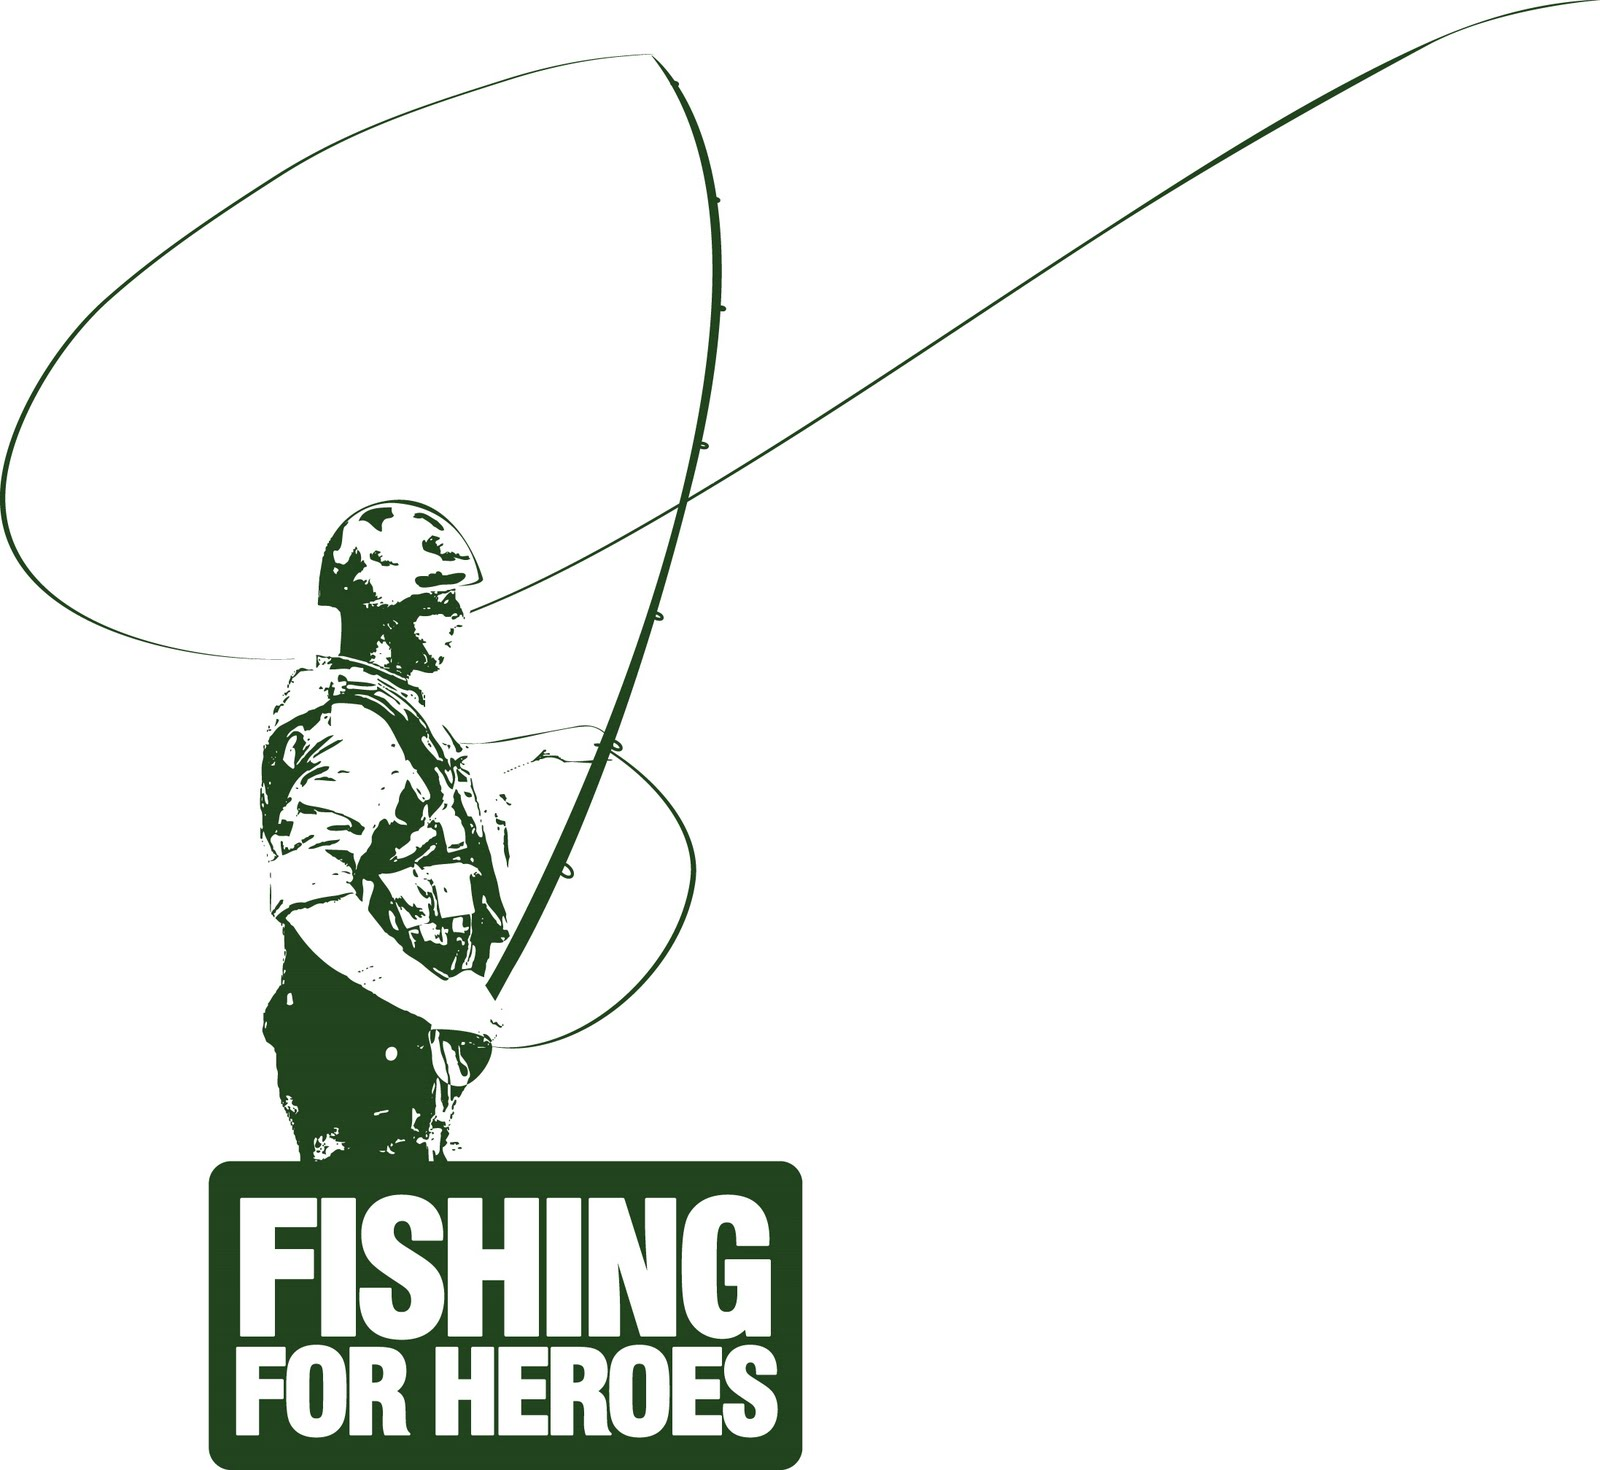 Charity t shirts hoodies fishing for heroes for Polo shirt with fish logo